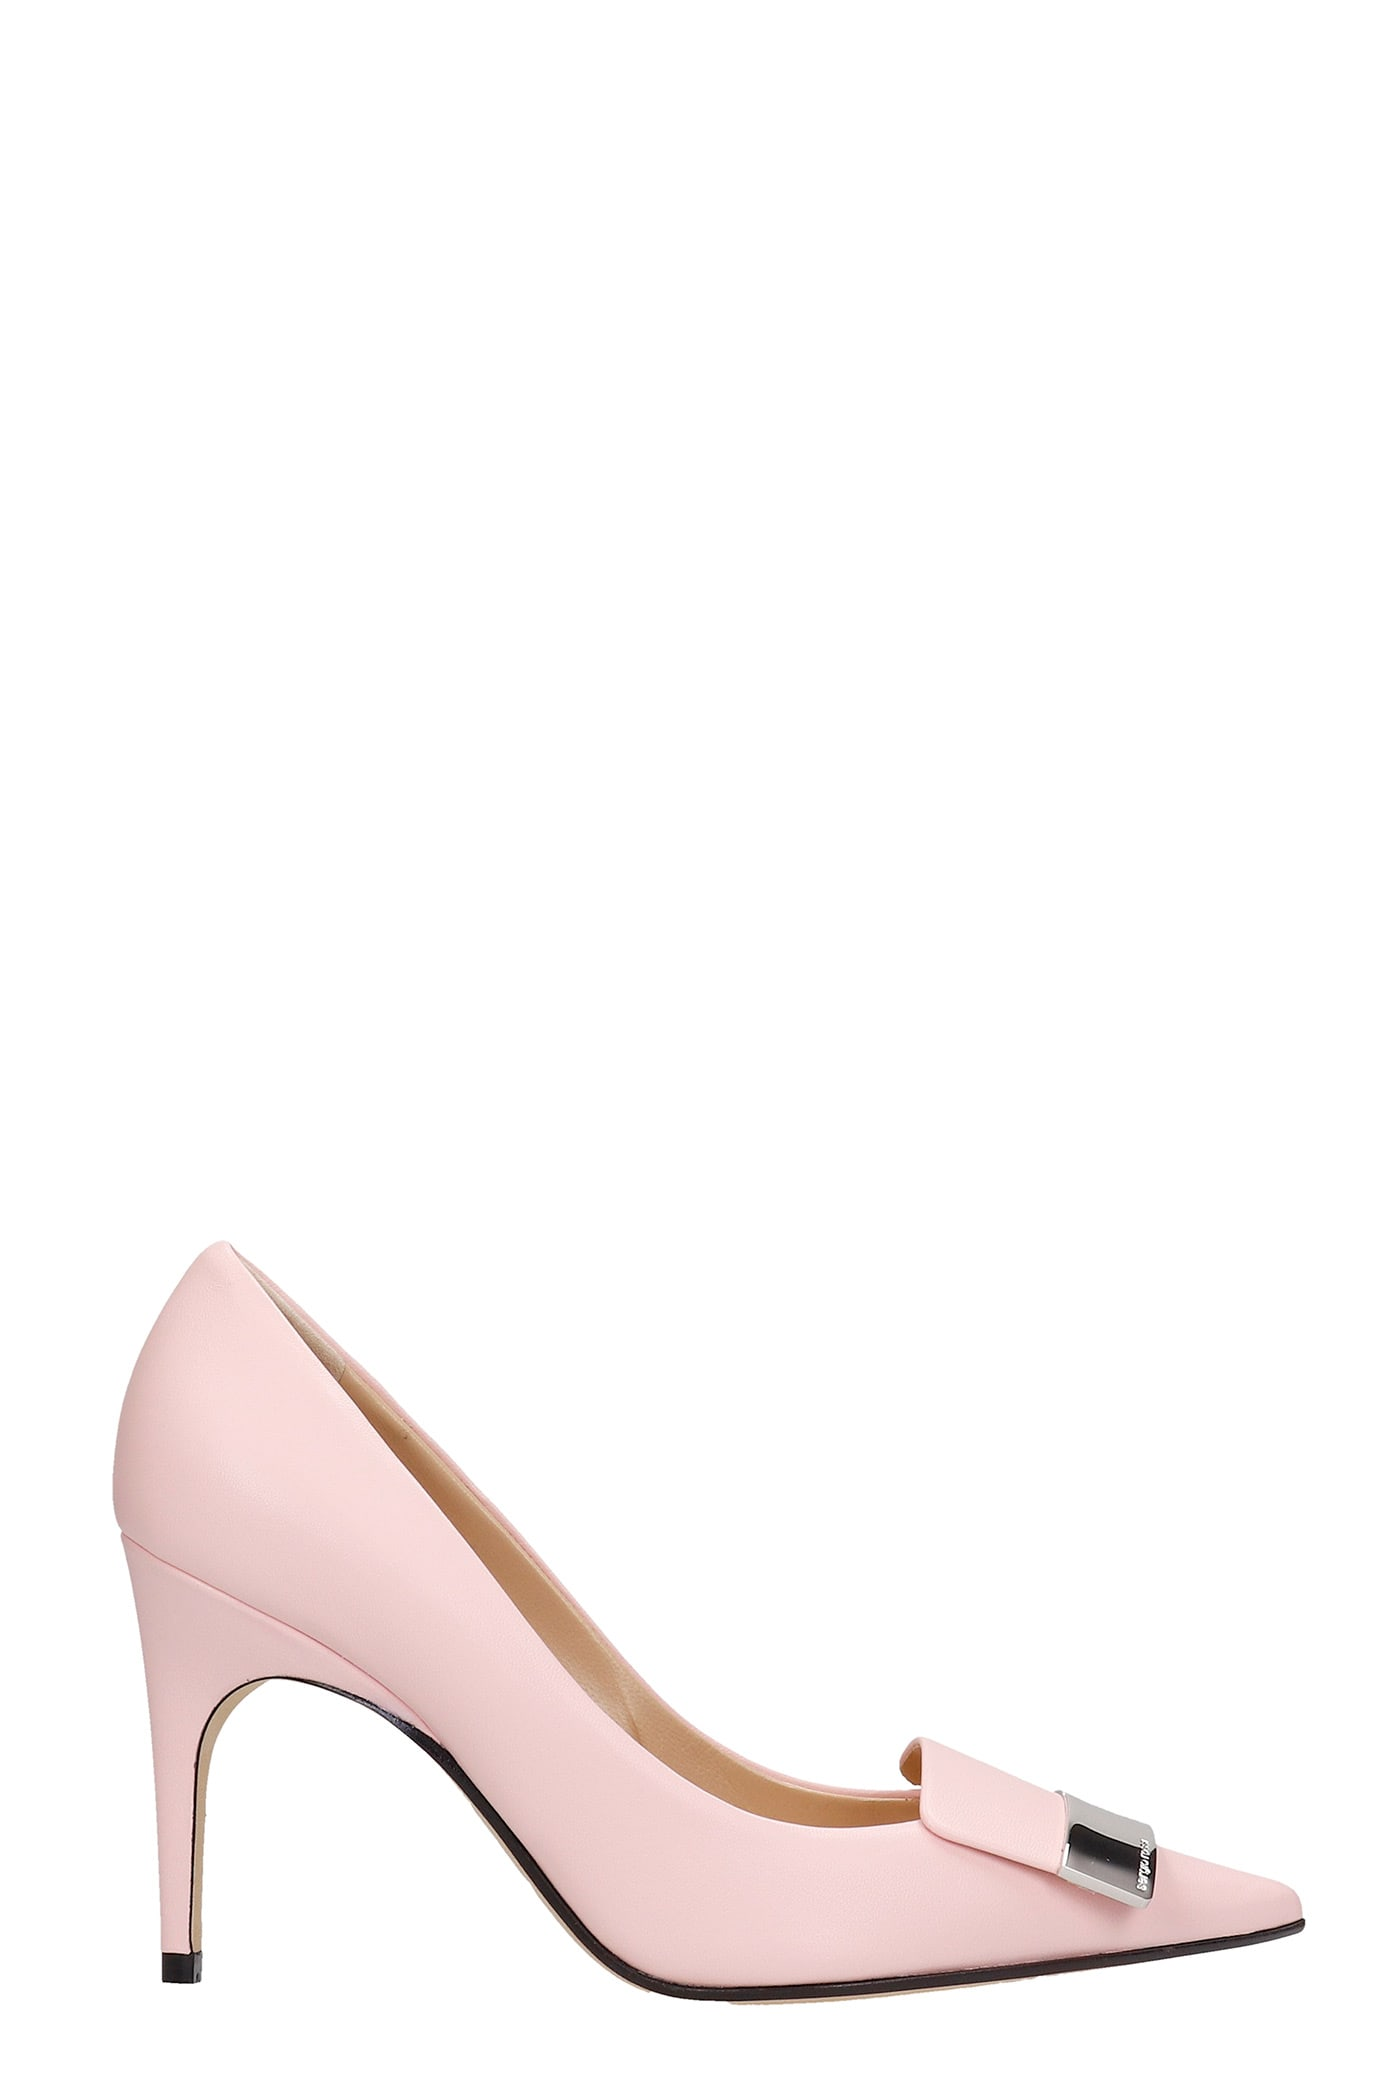 Sergio Rossi PUMPS IN ROSE-PINK LEATHER